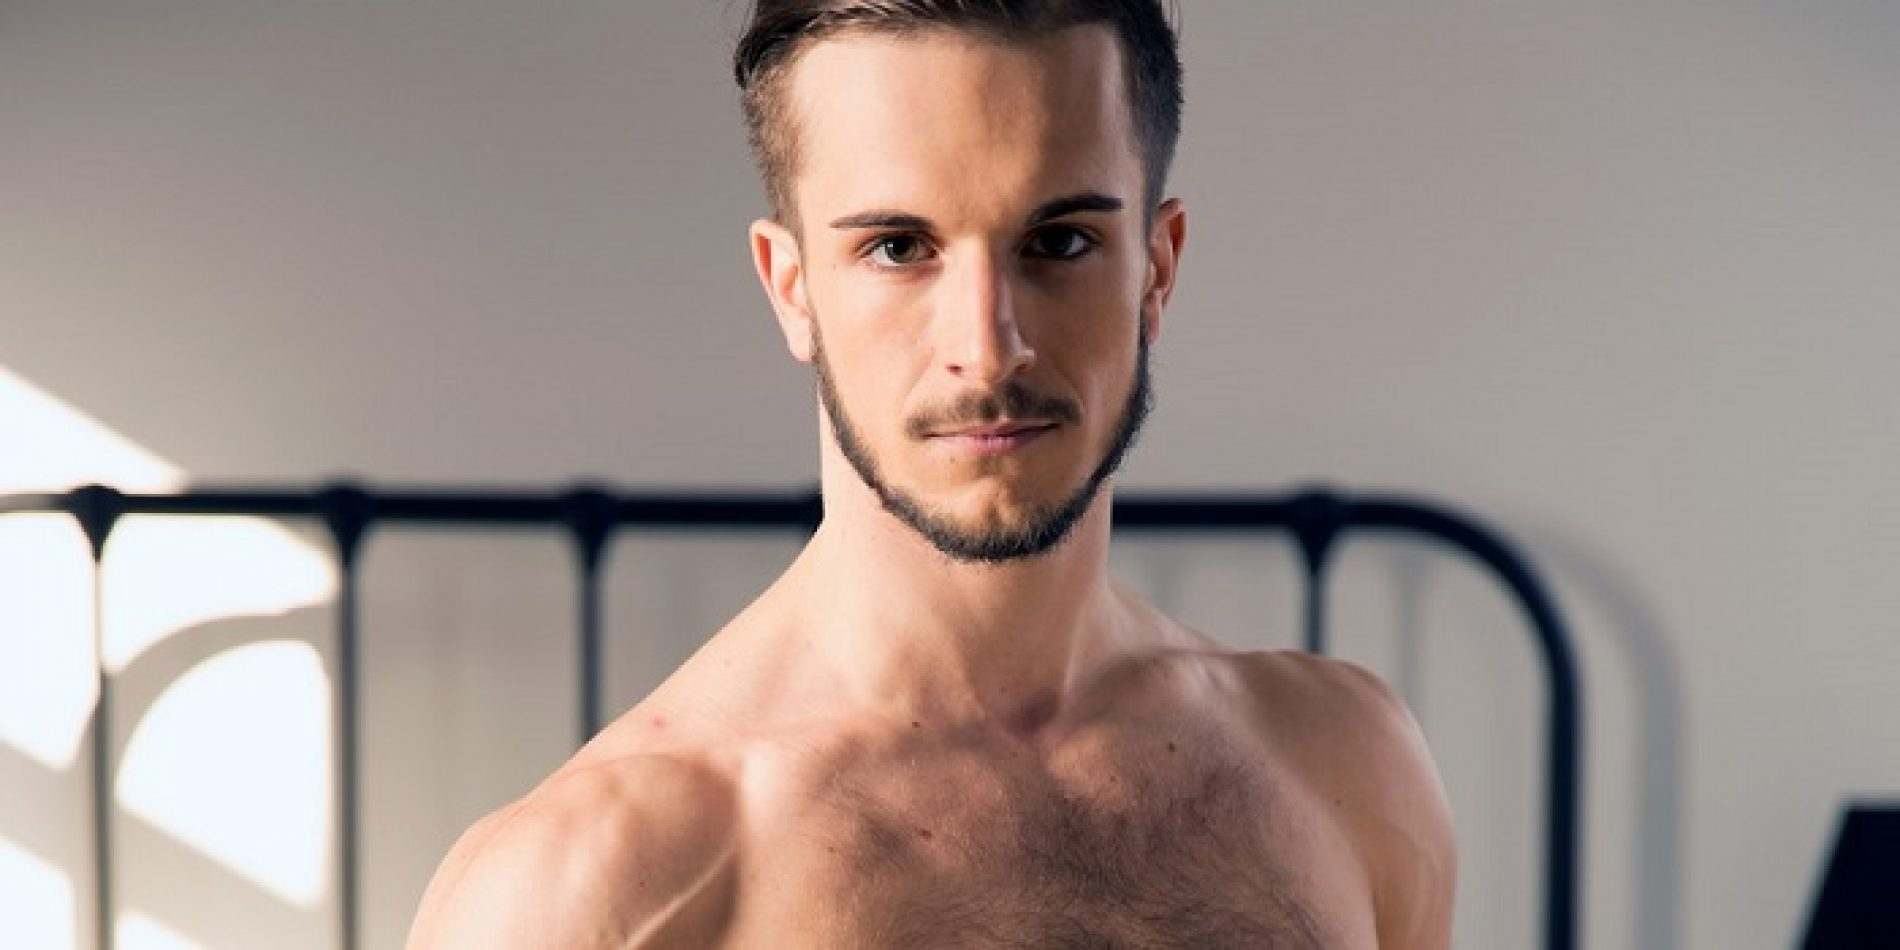 Gay Porn Star Donte Thick Faces Backlash For Saying He Won't Work With HIV-Positive Models Who Are Undetectable